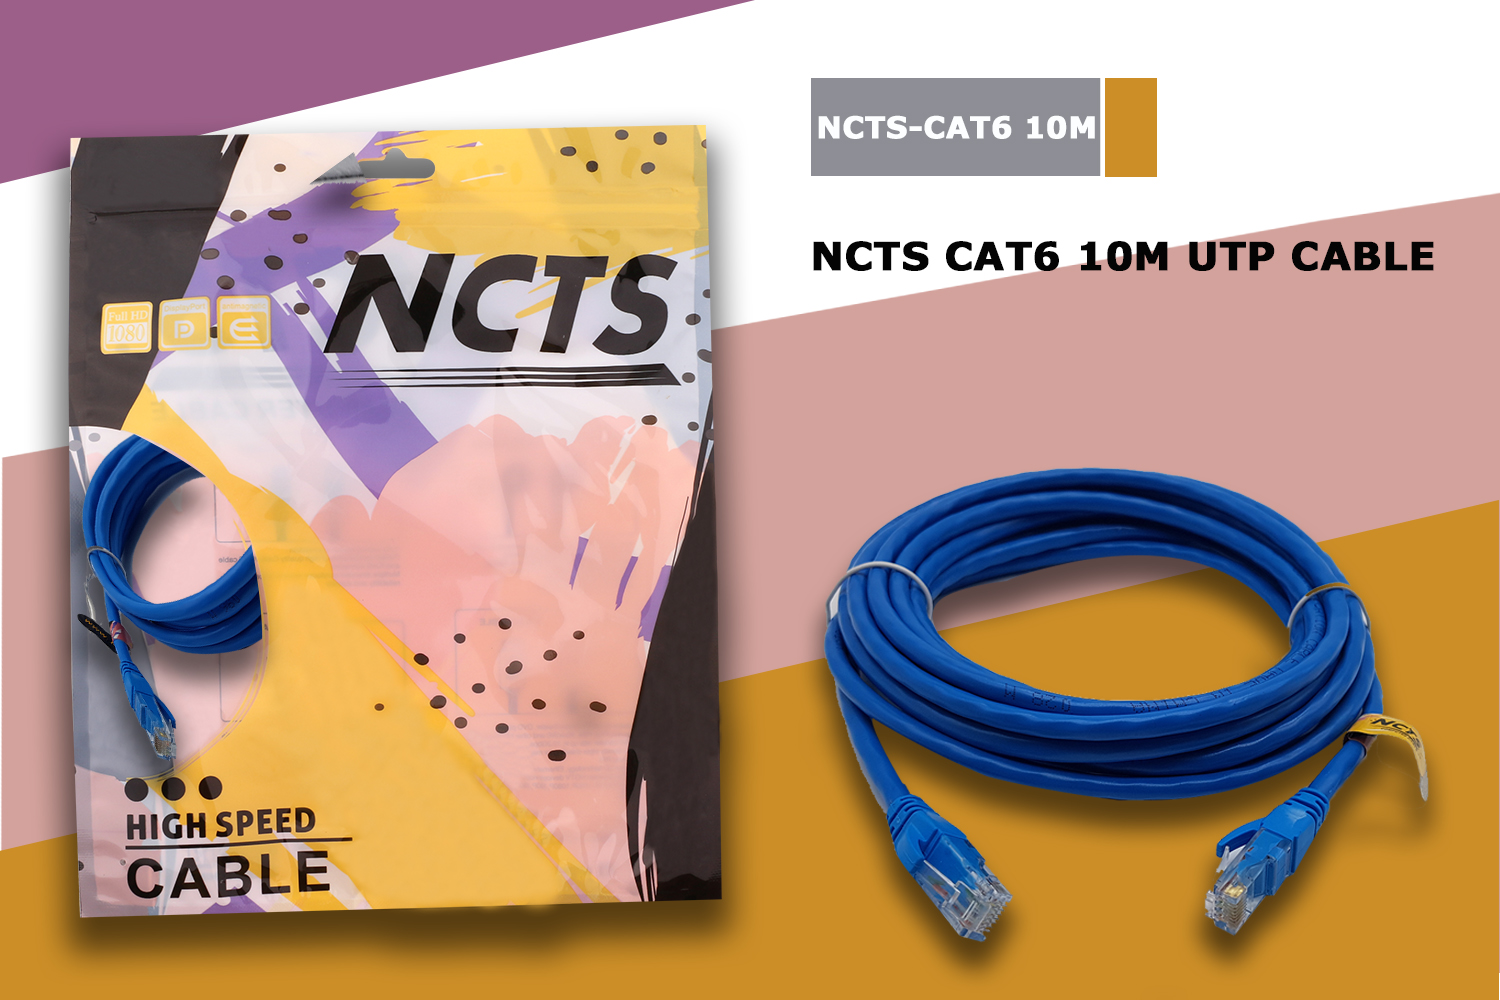 NCTS CAT6 20M UTP CABLE